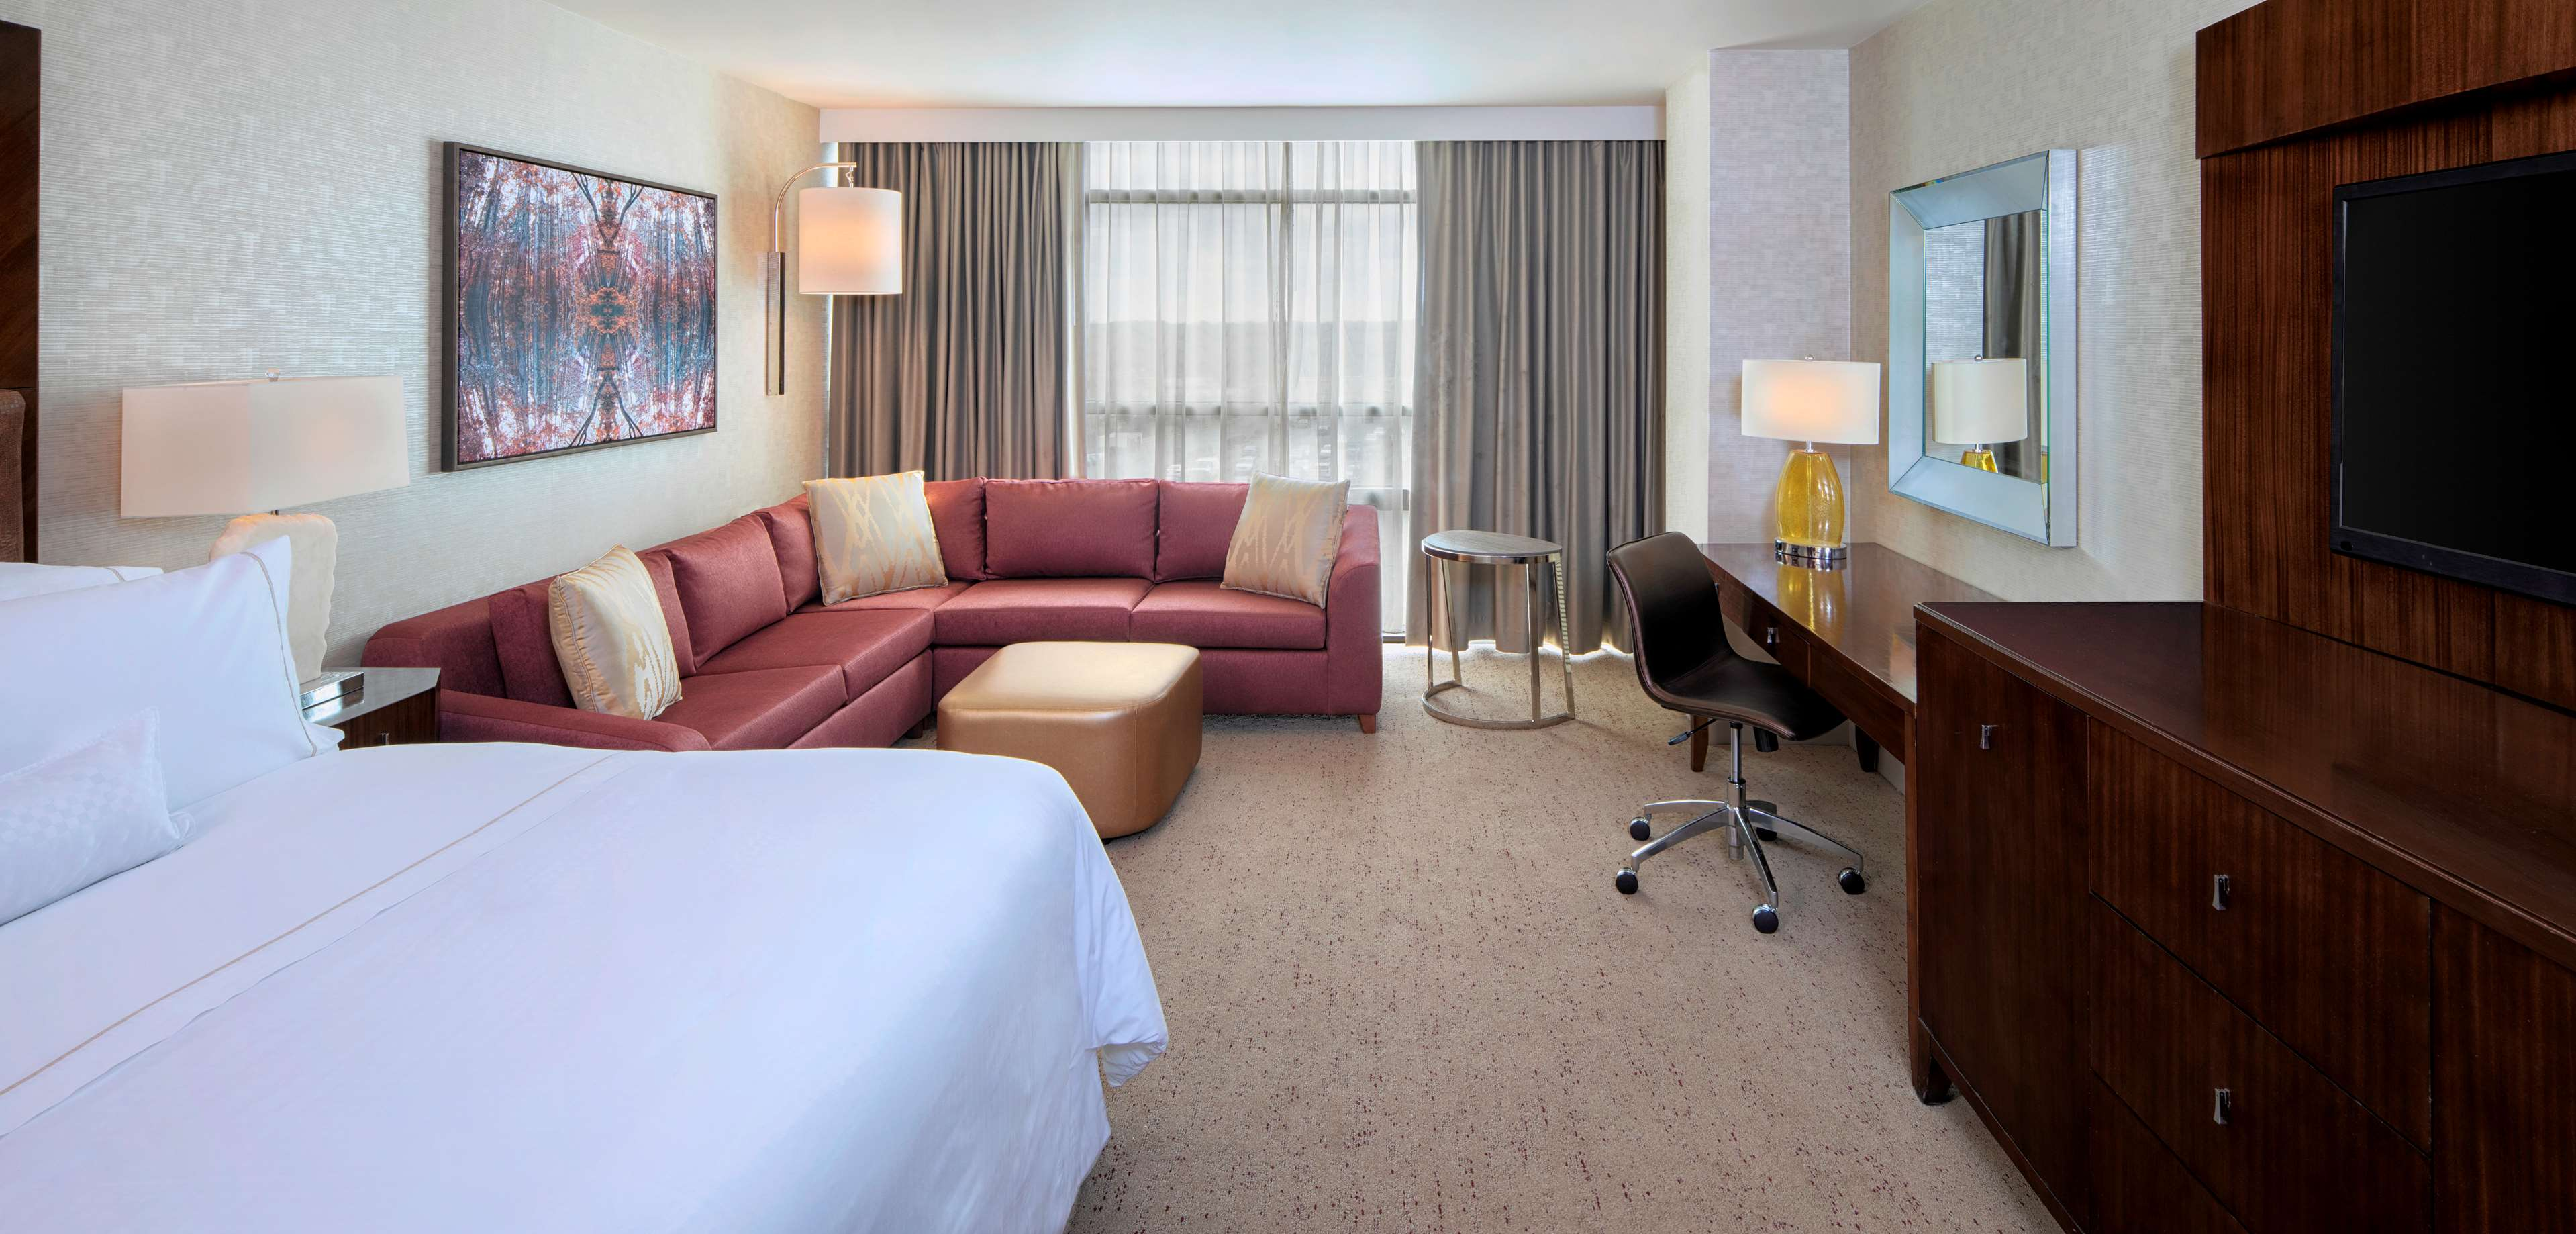 The Westin Mount Laurel image 2